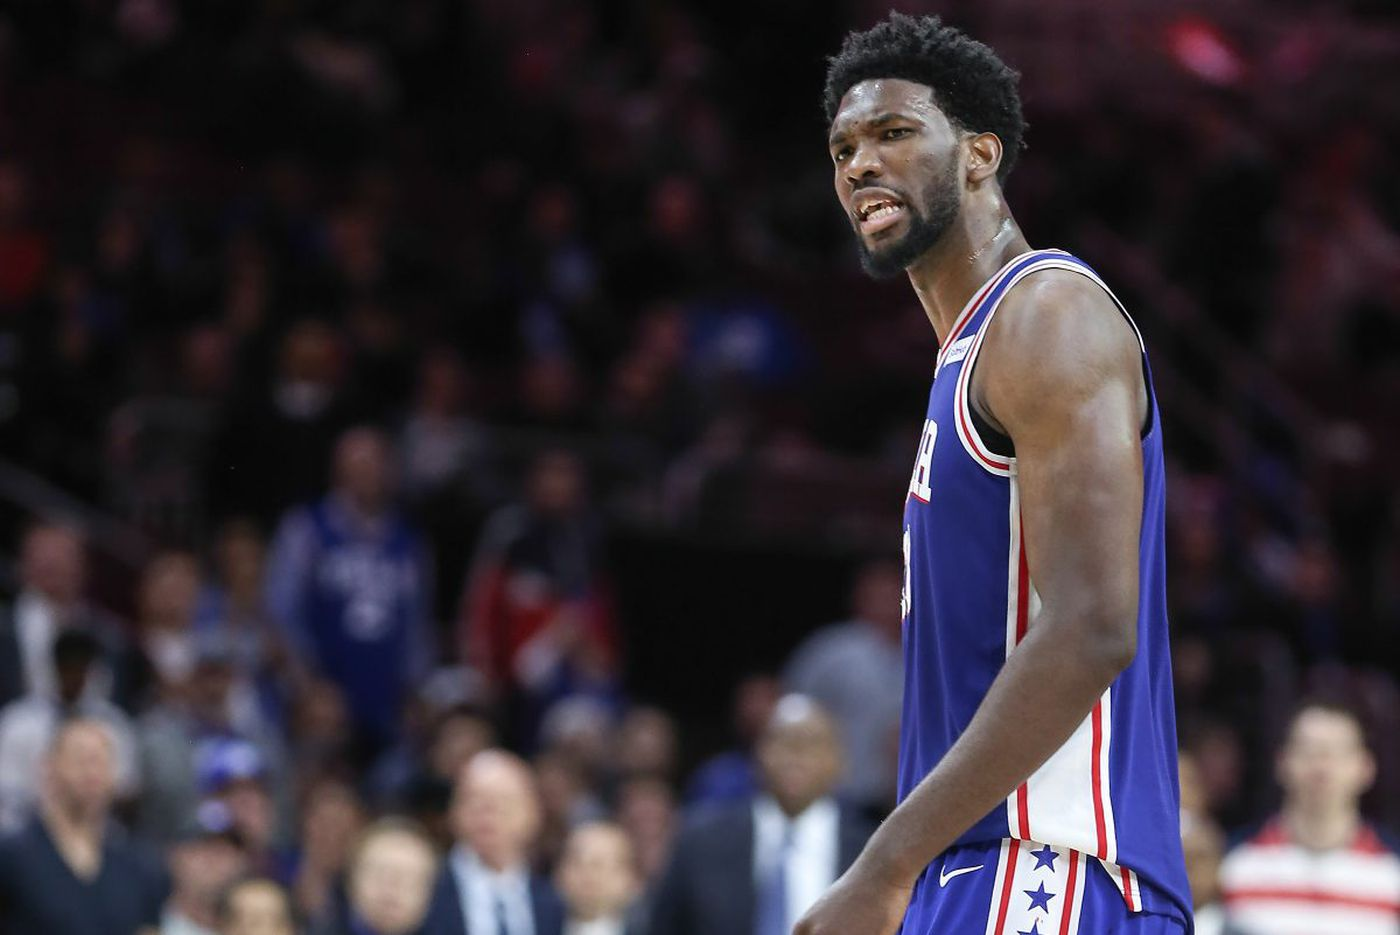 Sixers-Thunder: Somehow limiting turnovers a must for Philly